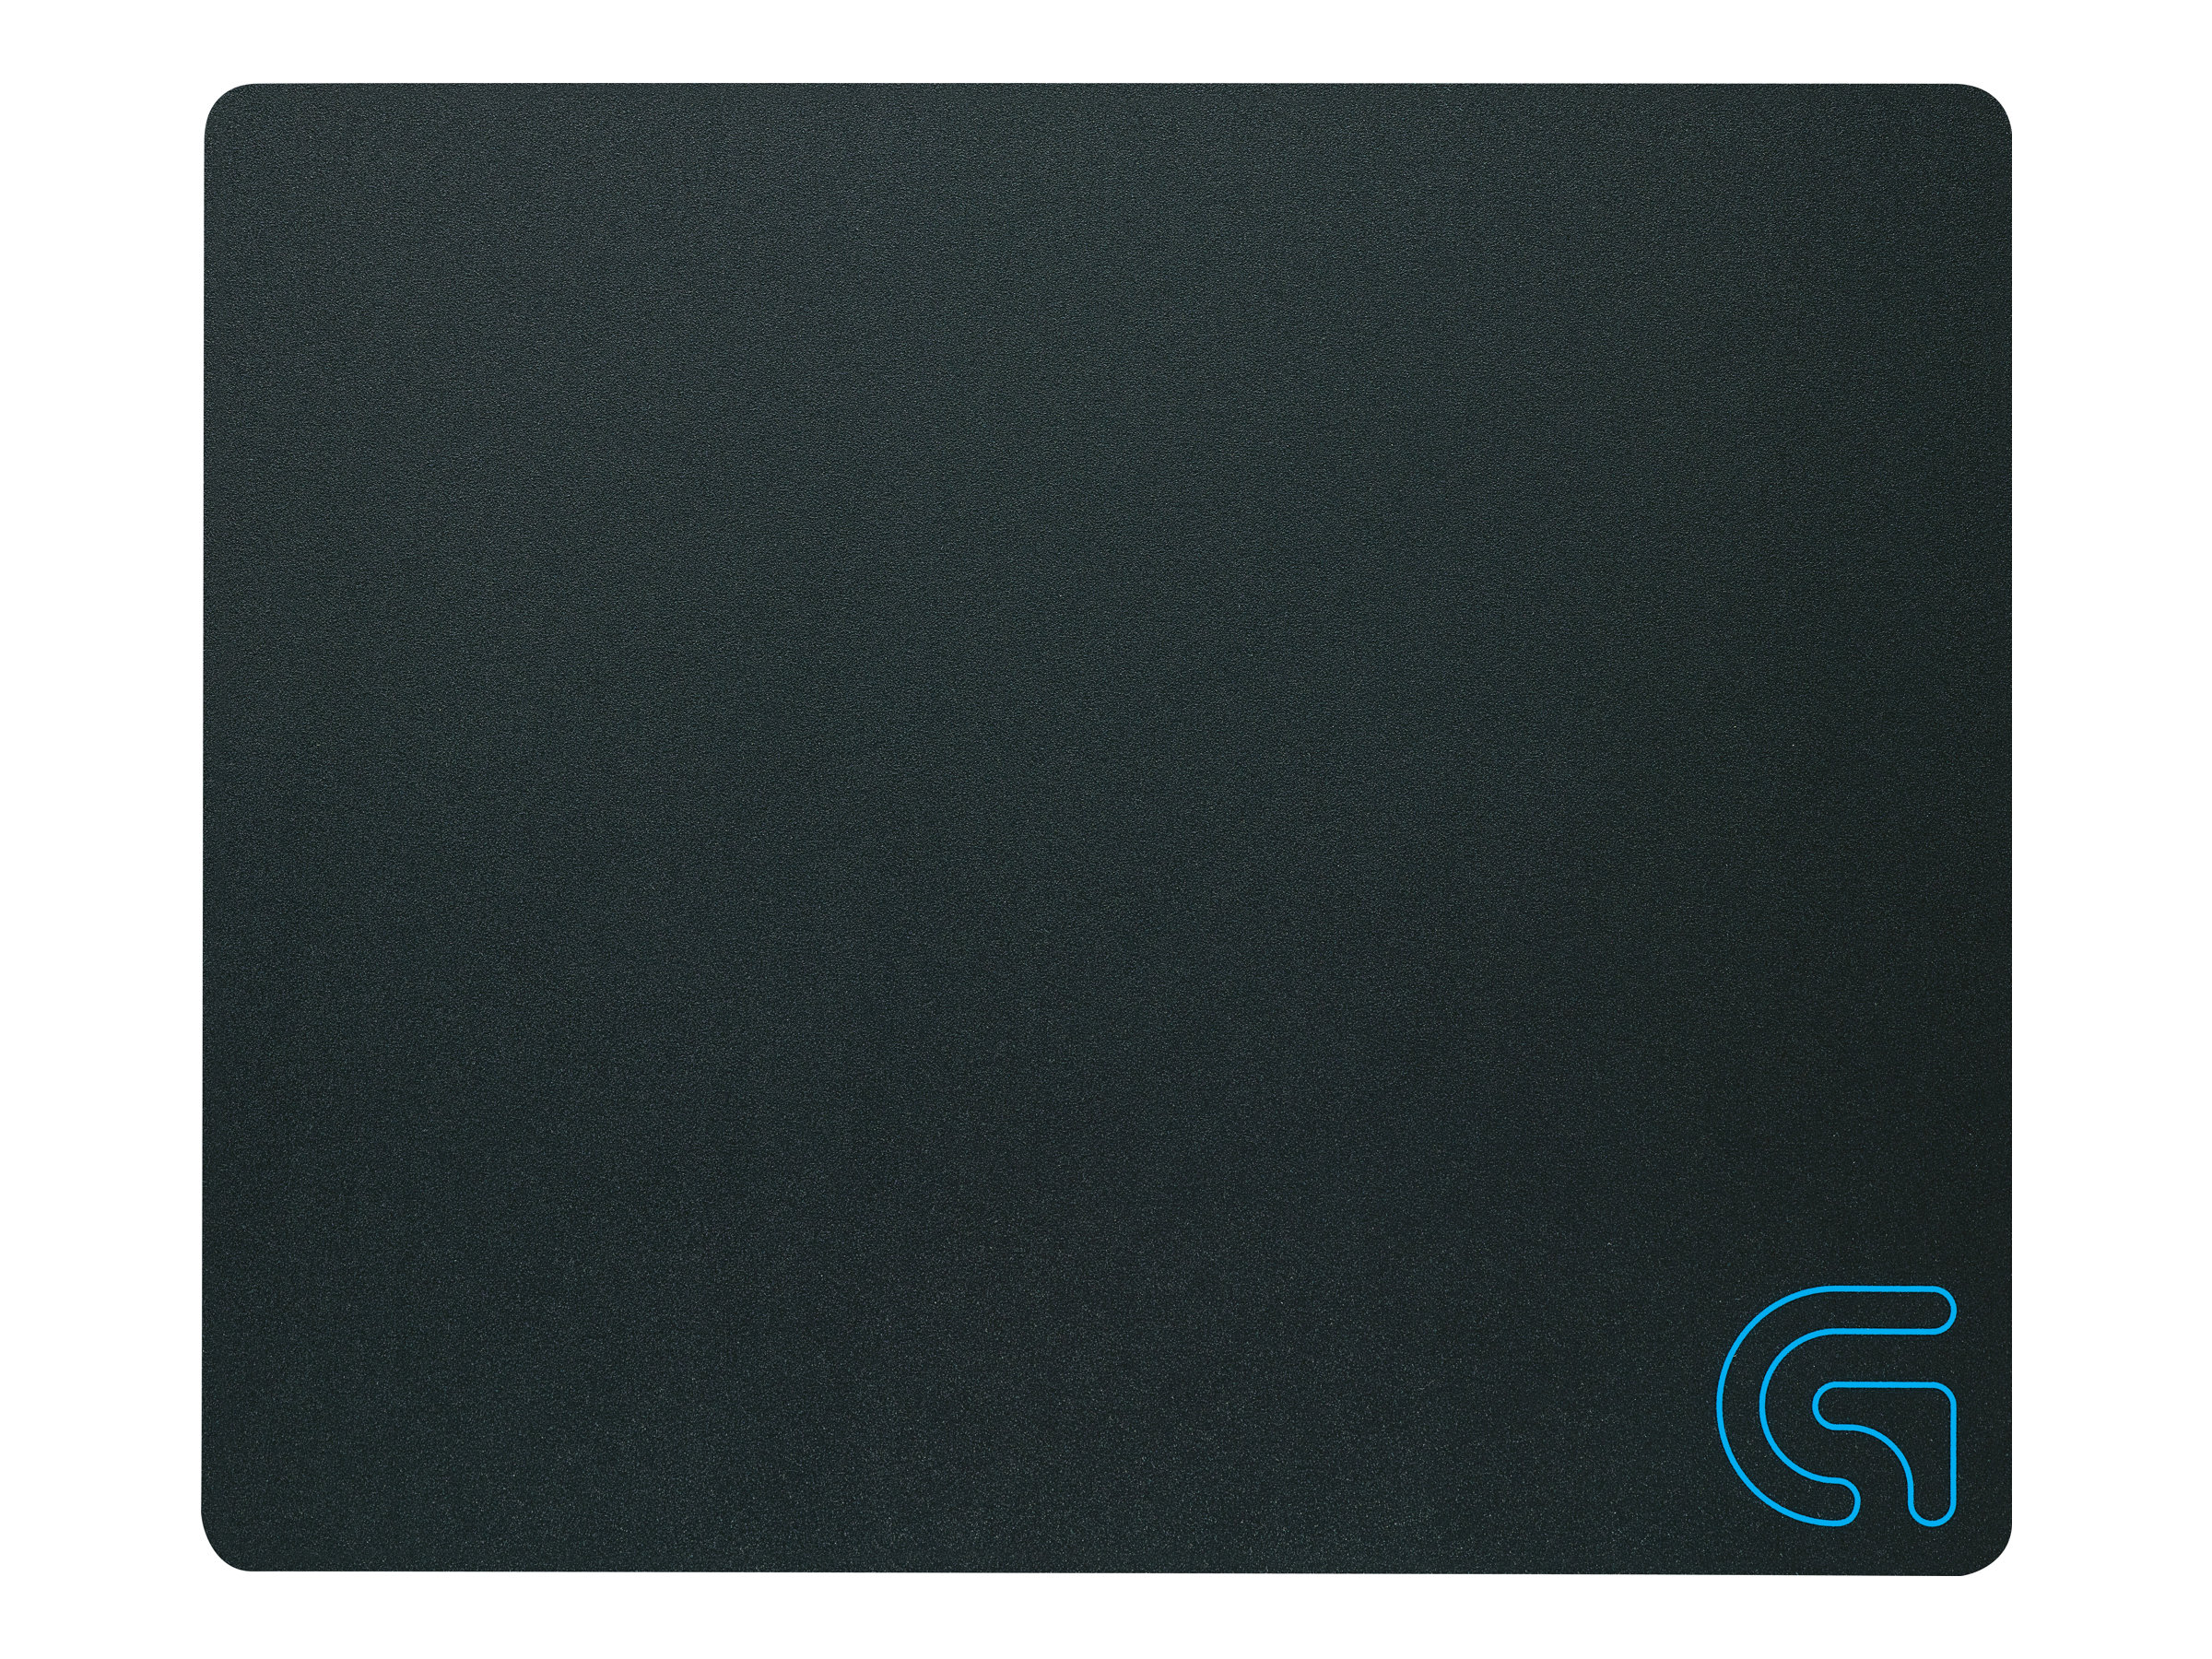 Logitech G440 Hard Gaming Mouse Pad, 943-000049, 17922554, Ergonomic Products